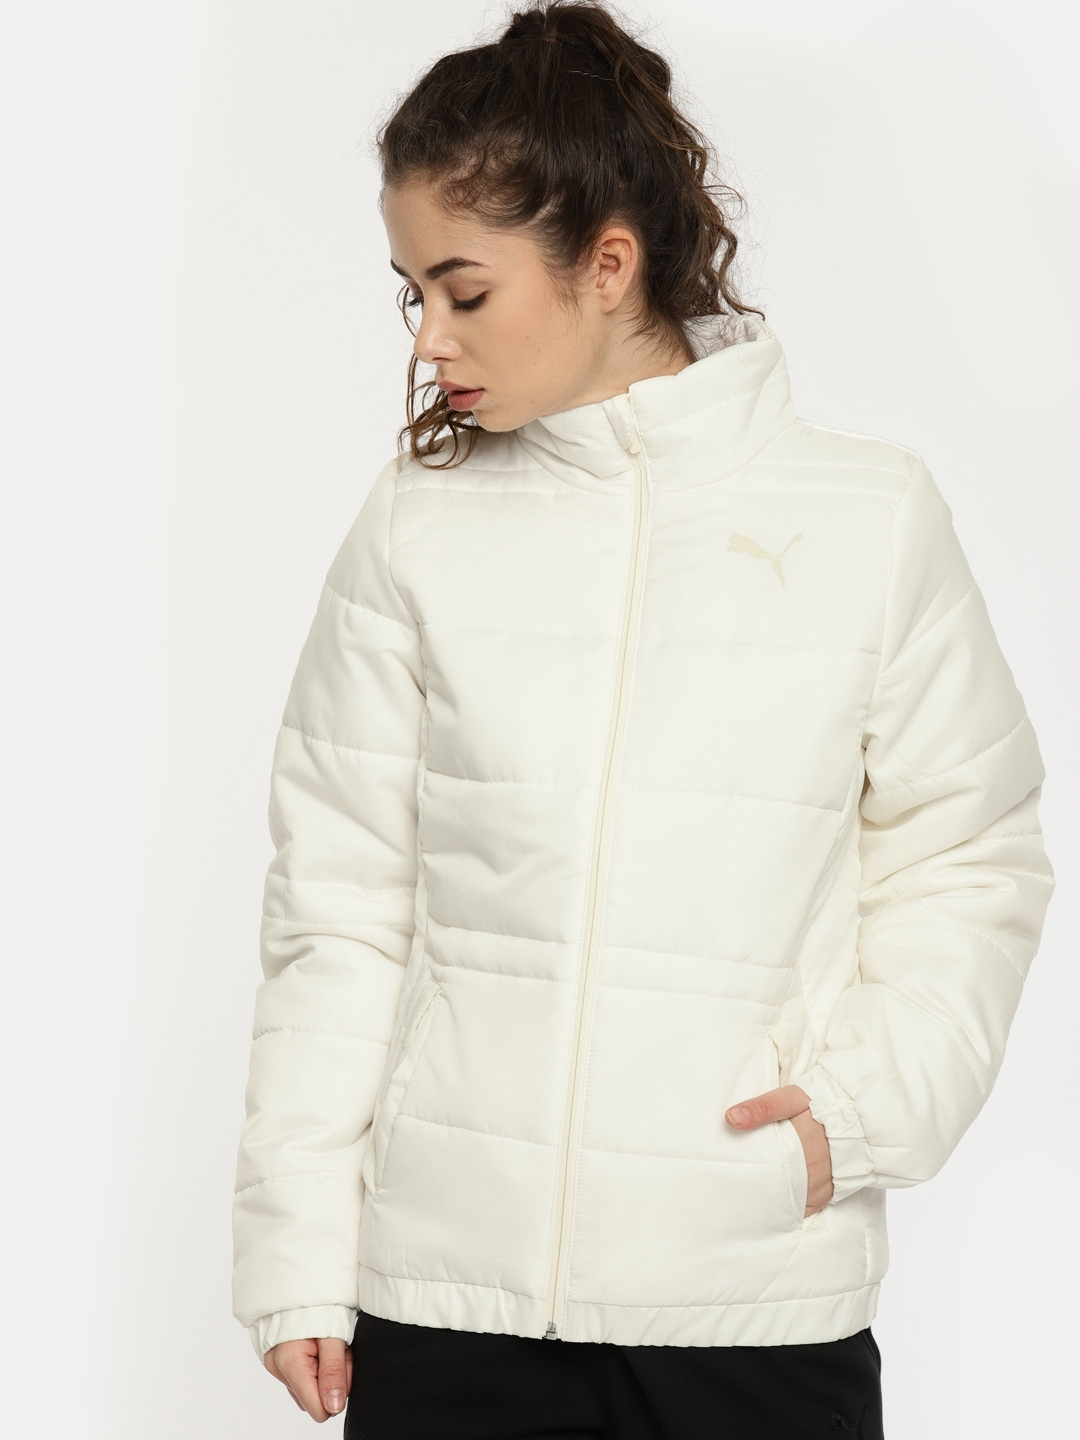 676acfb0efe2 Buy Puma Women Off White ESS Padded Puffer Jacket - Jackets for ...